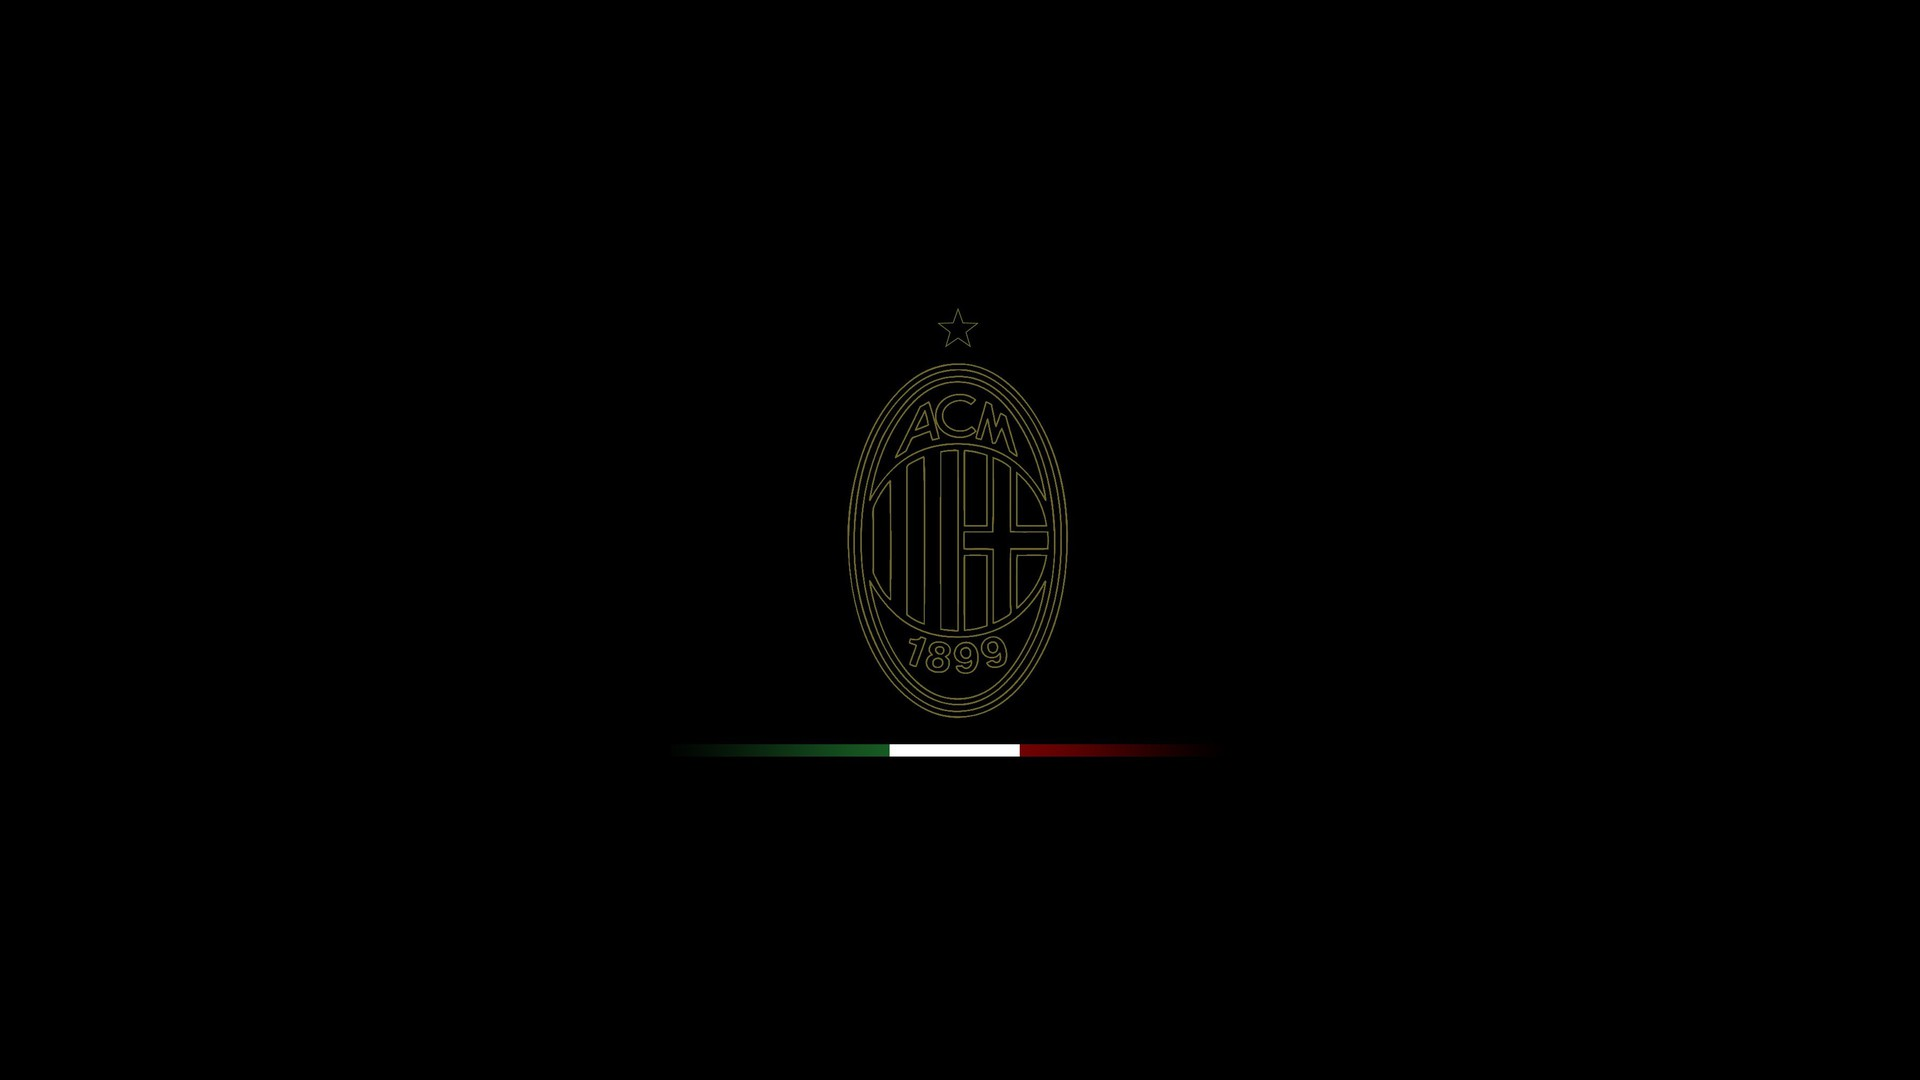 Hd wallpaper ac milan - Wallpaper Wiki Ac Milan Soccer Wallpaper Pic Wpd0014191